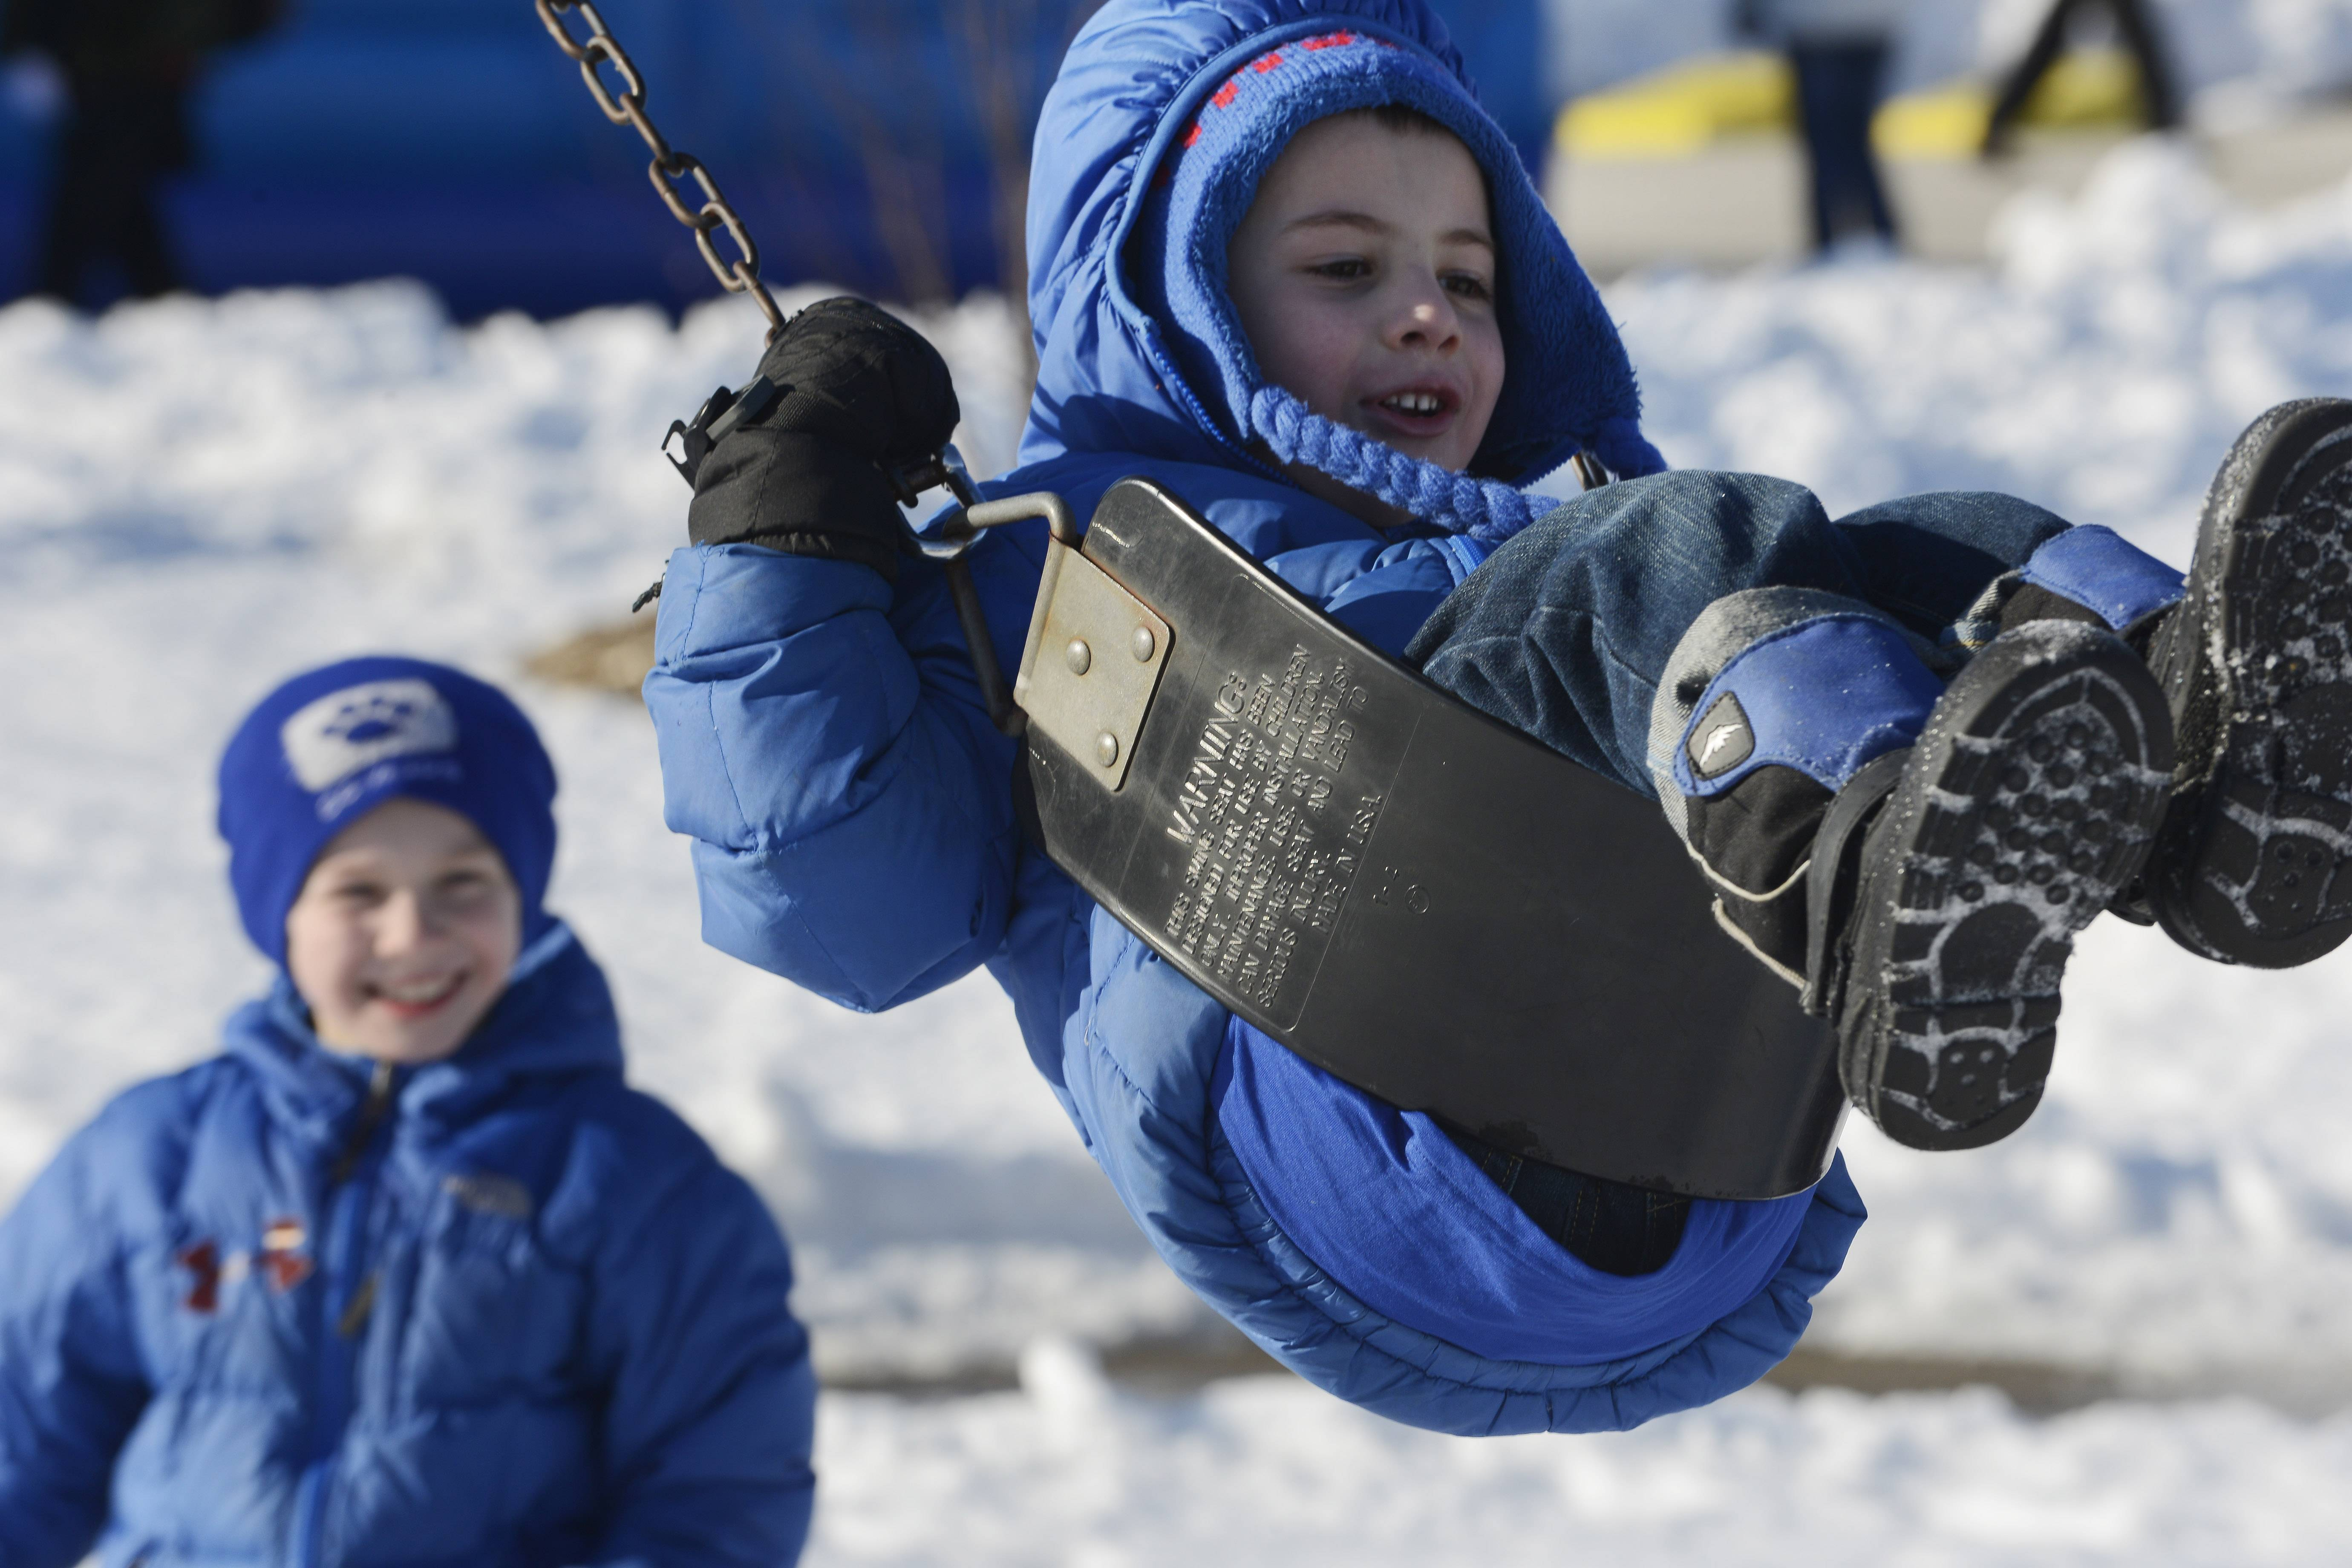 JOE LEWNARD/jlewnard@dailyherald.comLucas Harrington, 5, of Lake Zurich doesn't let the freezing temperature deter him from enjoying the swing Saturday while being pushed by his brother, Danny, 7, during the Winter Wonderland Carnival at Community Park in Hawthorn Woods.